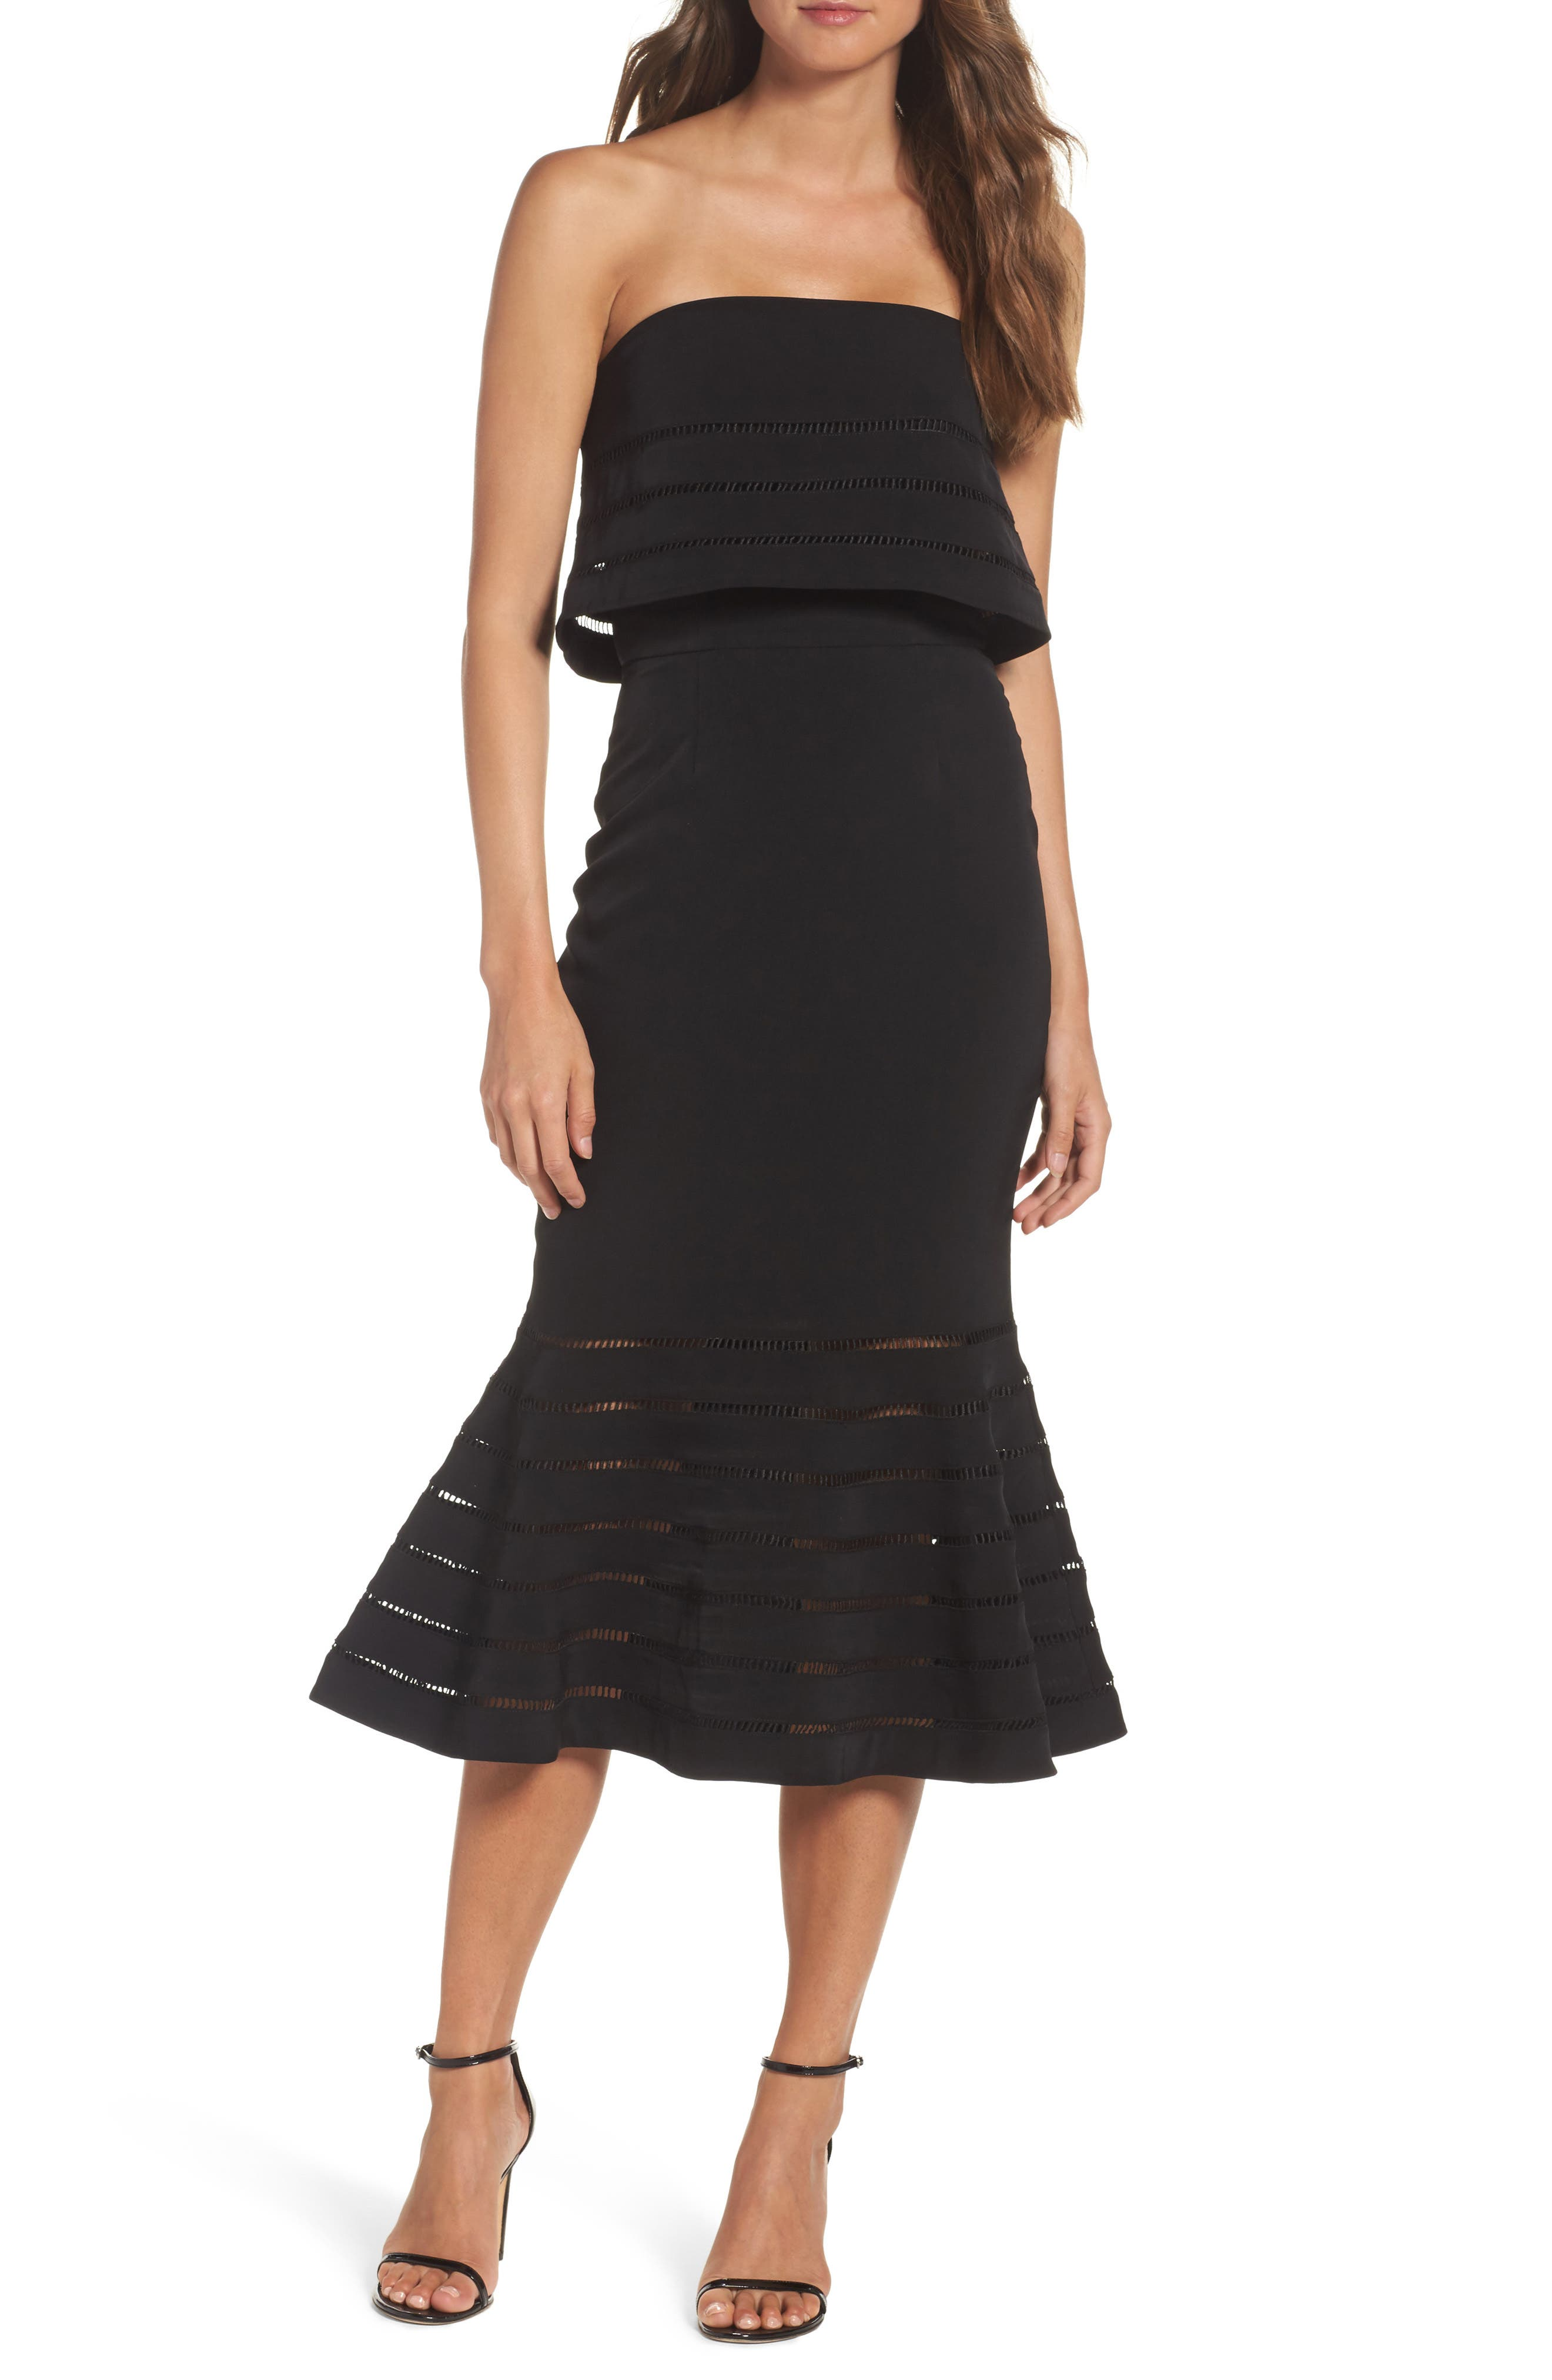 C/MEO Collective Say It Again Popover Dress